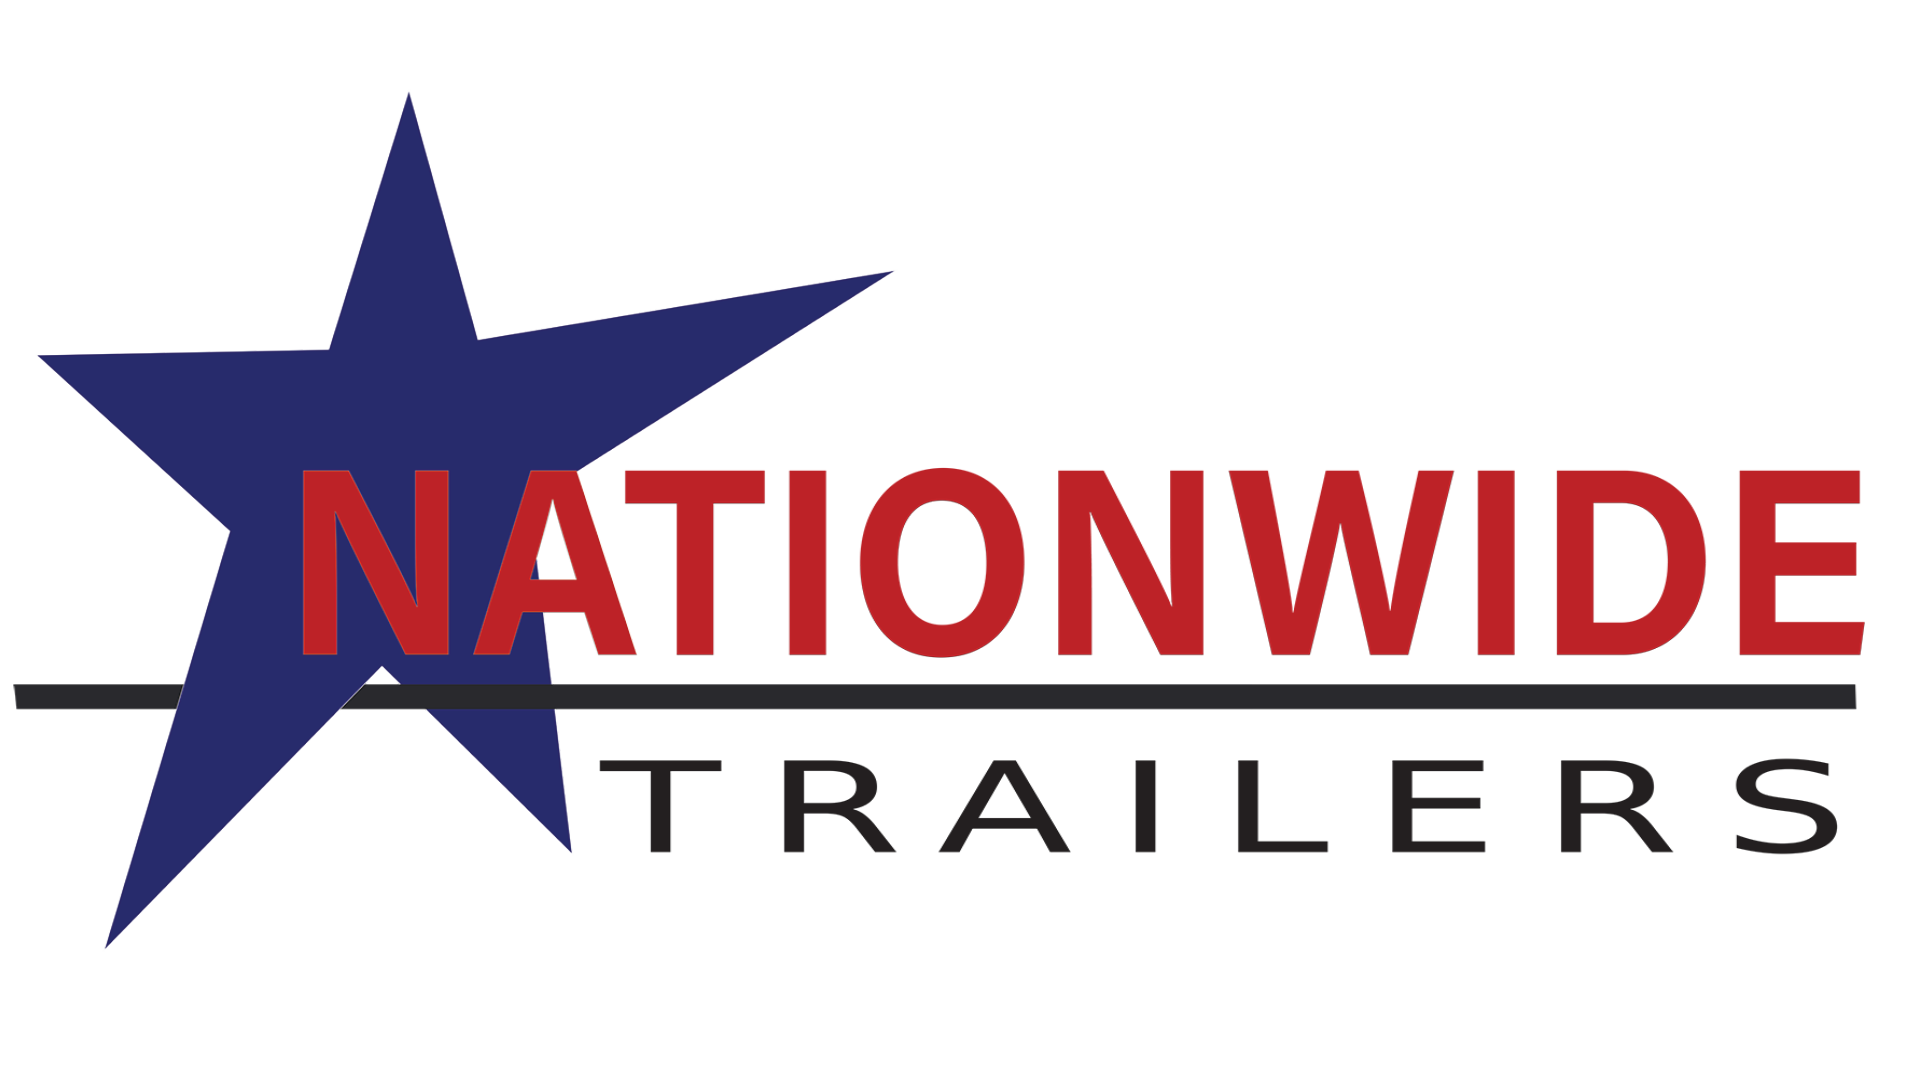 Nationwide Trailers Logo